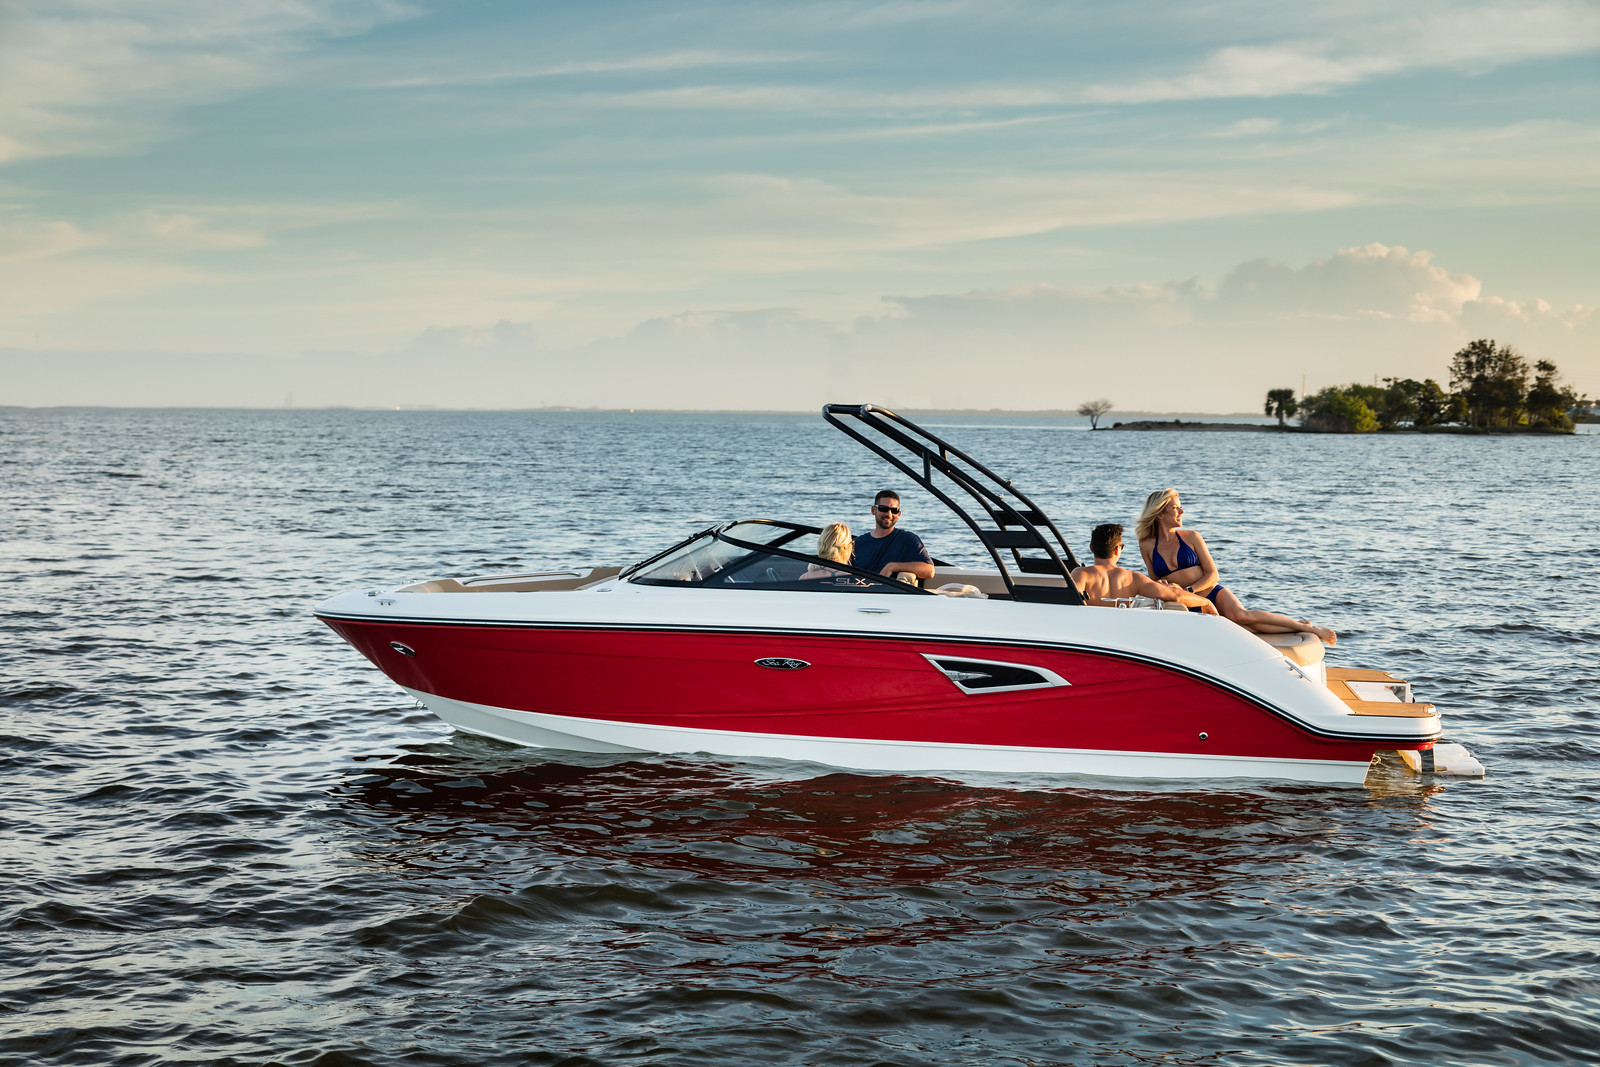 Modern Yachts – Eastern Long Island Sea Ray Dealer - Sales And Service